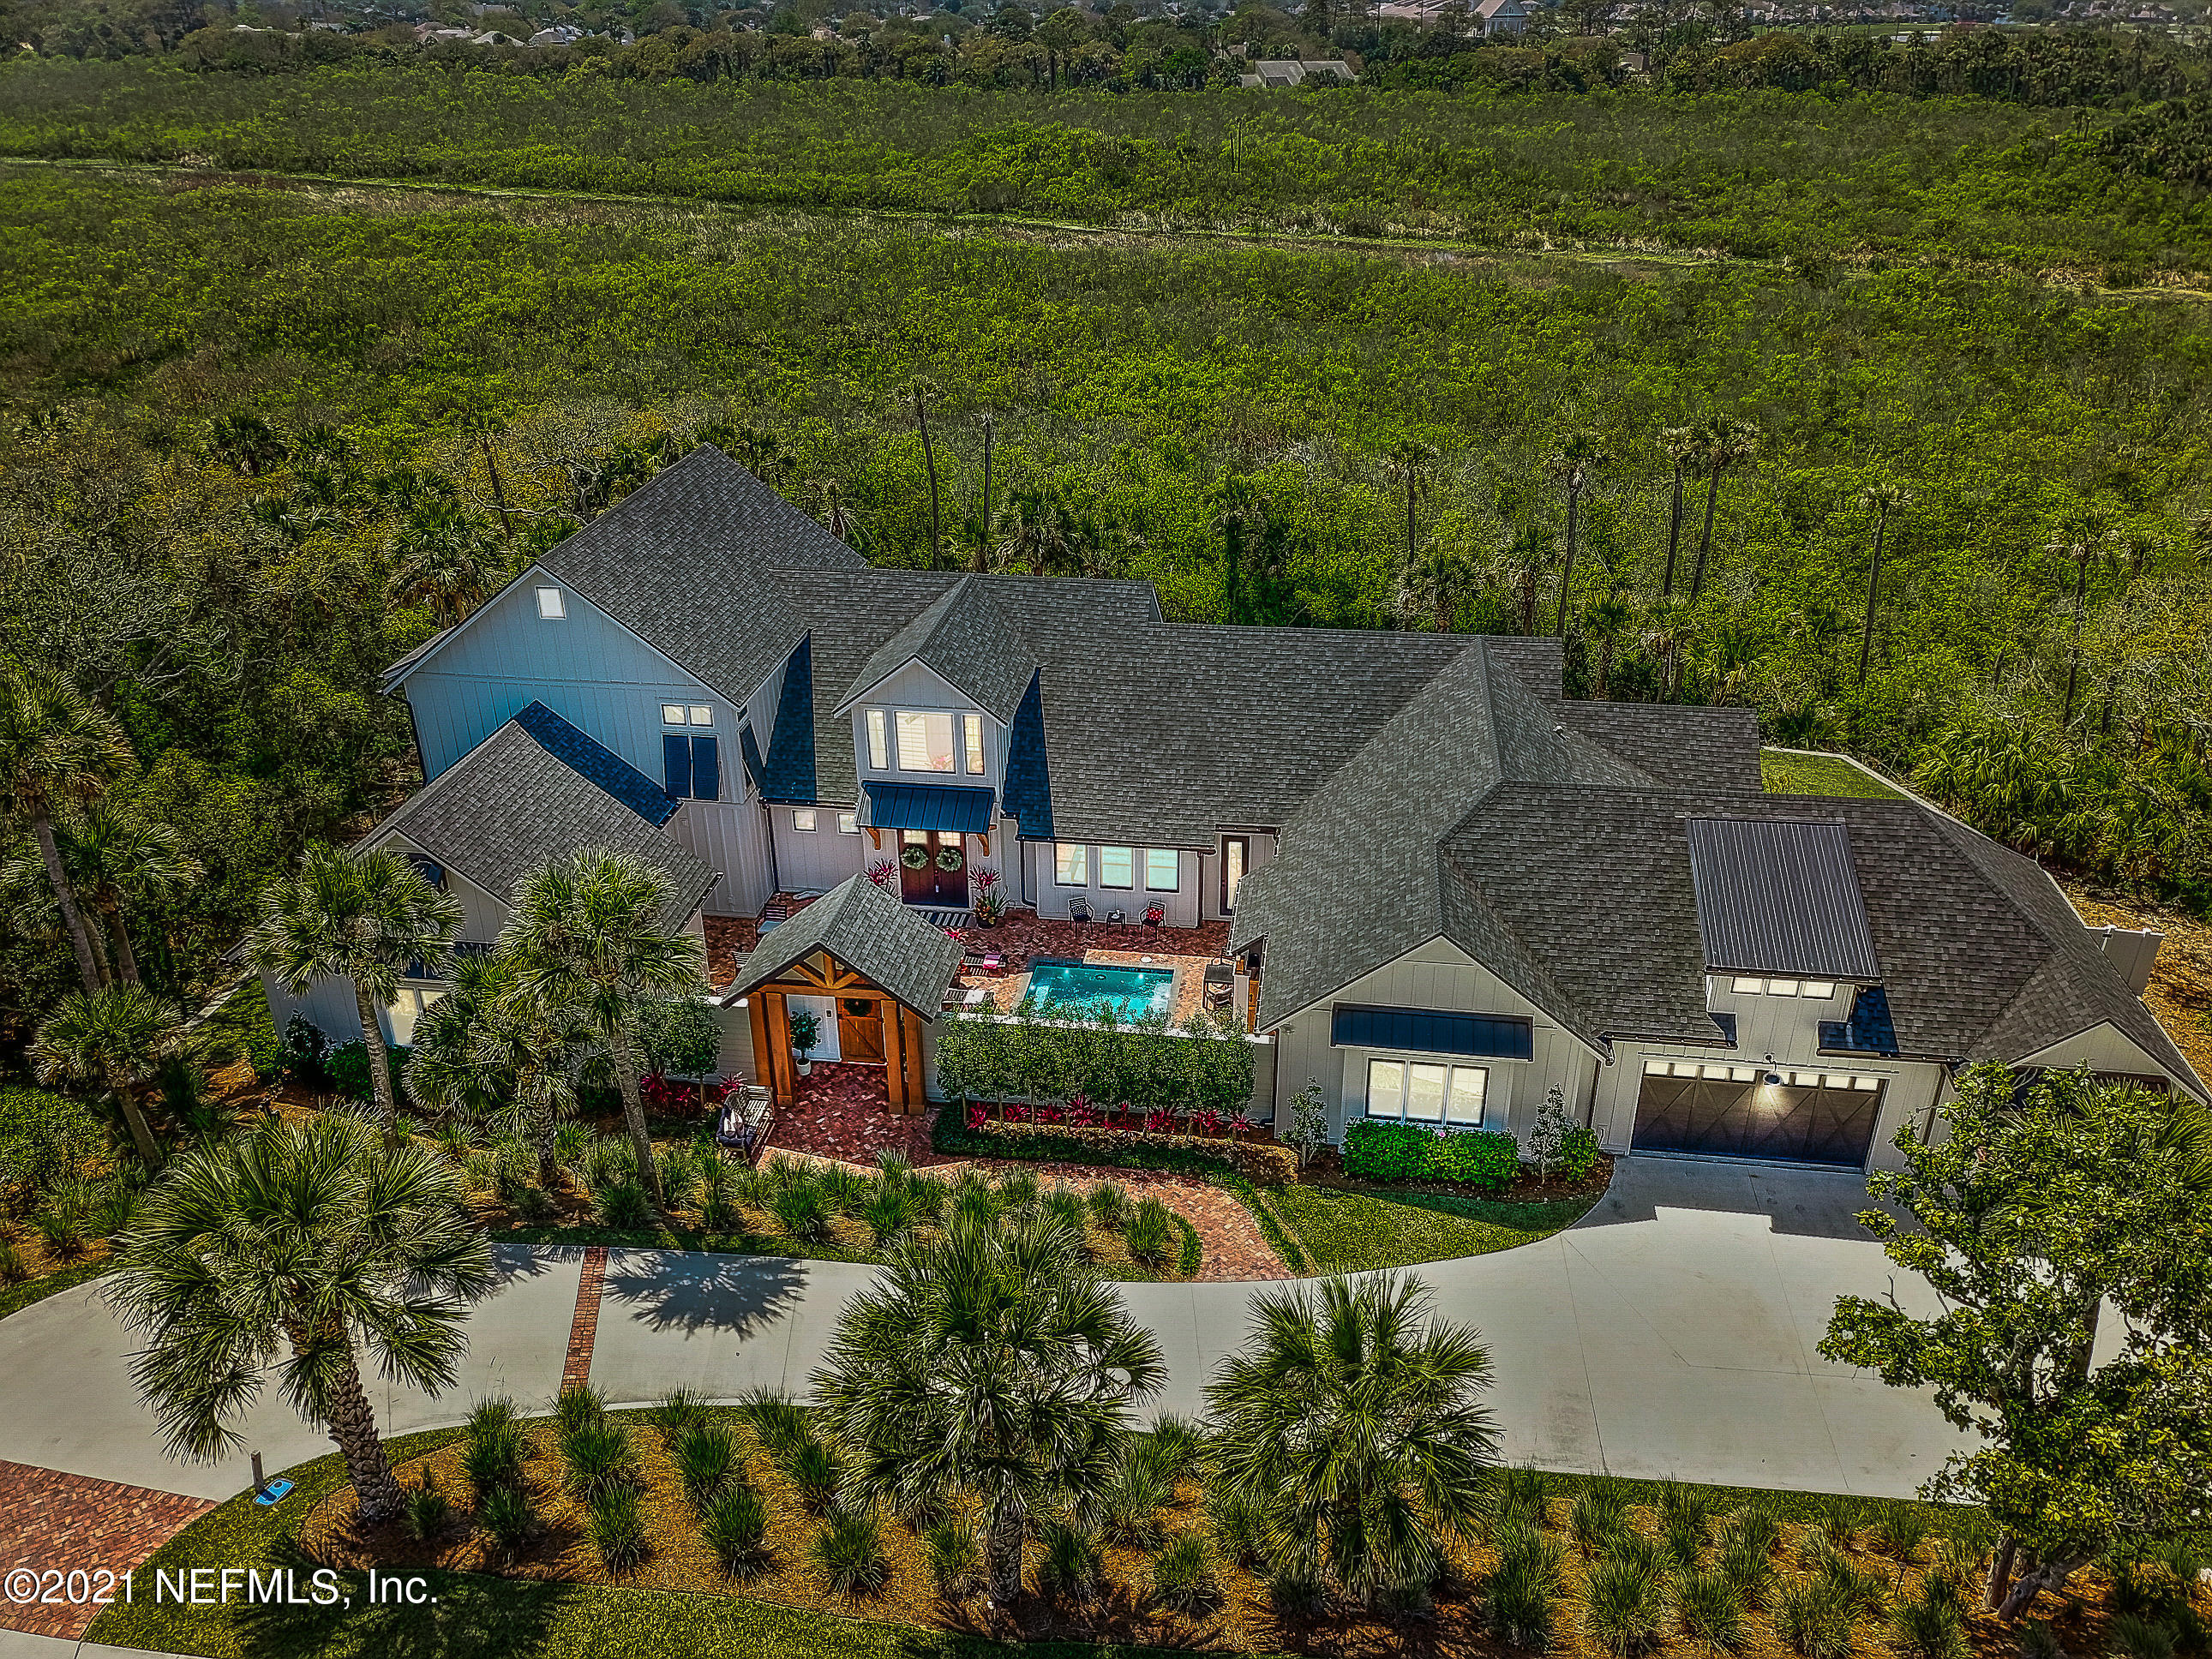 Spectacular One of a Kind Home on Prestigious Ponte Vedra Blvd w/ Private Deeded Beach Access Has Too Many Features to list here see Attached Sheet with Specs. 200 ft Private Lot surrounded by Nature, Farmhouse Meets Beach House. Hickory Wood Floors, Stunning Gourmet Kitchen 9 ft Island, Shiplap, Oversized Black Light fixtures, Expansive Old Columbia Brick outdoor patios & entertaining space, Spa Owner's Bath Retreat, 3 Fireplaces, Courtyard Pool, Huge Column Fridge & Freezer, Lounge/Sitting Area, Casita w/En Suite Bath, Climate Controlled Summer Kitchen & Living Room w/Glass Rolling Door for indoor/outdoor living, Custom Solid Wood Cabinets in Kitchen, All Baths, Laundry, Mudroom w Custom Storage Bins, Bench, Heated Pool, *Listing Agent Holds an Interest in Property **24Hrs Notice to Show NOTABLE FEATURES The Crowning Jewel of this Spectacular Home is 15 Steps to Your Very Own Beach Access Where You will Enjoy Privacy & Seclusion with Breathtaking Sunrises and Glowing Sunset Skies!  Private/ Exclusive Single Owner Deeded Beach Access for this Parcel Only and Transfers with Property To All Future Owners  200 Ft Double Lot on Prestigious Ponte Vedra Blvd, this Private Homesite Backs Up to the Guana Nature Preserve, Protected Privacy Forever and Surrounded By Nature!  And, You Will Enjoy Stunning Unobstructed Sunset Views Every Day! An Unexpected Bonus is Your Very Own Firework Show Compliments of Sawgrass Every 4th of July the Fireworks Light Up the Sky Over Your Backyard and the Guana Preserve!  Highly Functional Floor Plan- Lives like a Single-story Home with Ground Floor 3-way Split Bedrooms for Privacy, with 2 Additional En Suite Bedrooms on the Second Floor and Separate Casita with Huge Bedroom and En Suite Bath  Custom Distressed Hickory Wood Flooring Throughout All Living Spaces  Spectacular Gourmet Kitchen Featuring a Huge Custom Solid Wood 9+ foot Island with Quartz surface, Wolf Appliances: 48 inch 8 Burner Natural Gas Range and Two Ovens, Wolf Microwave/Co